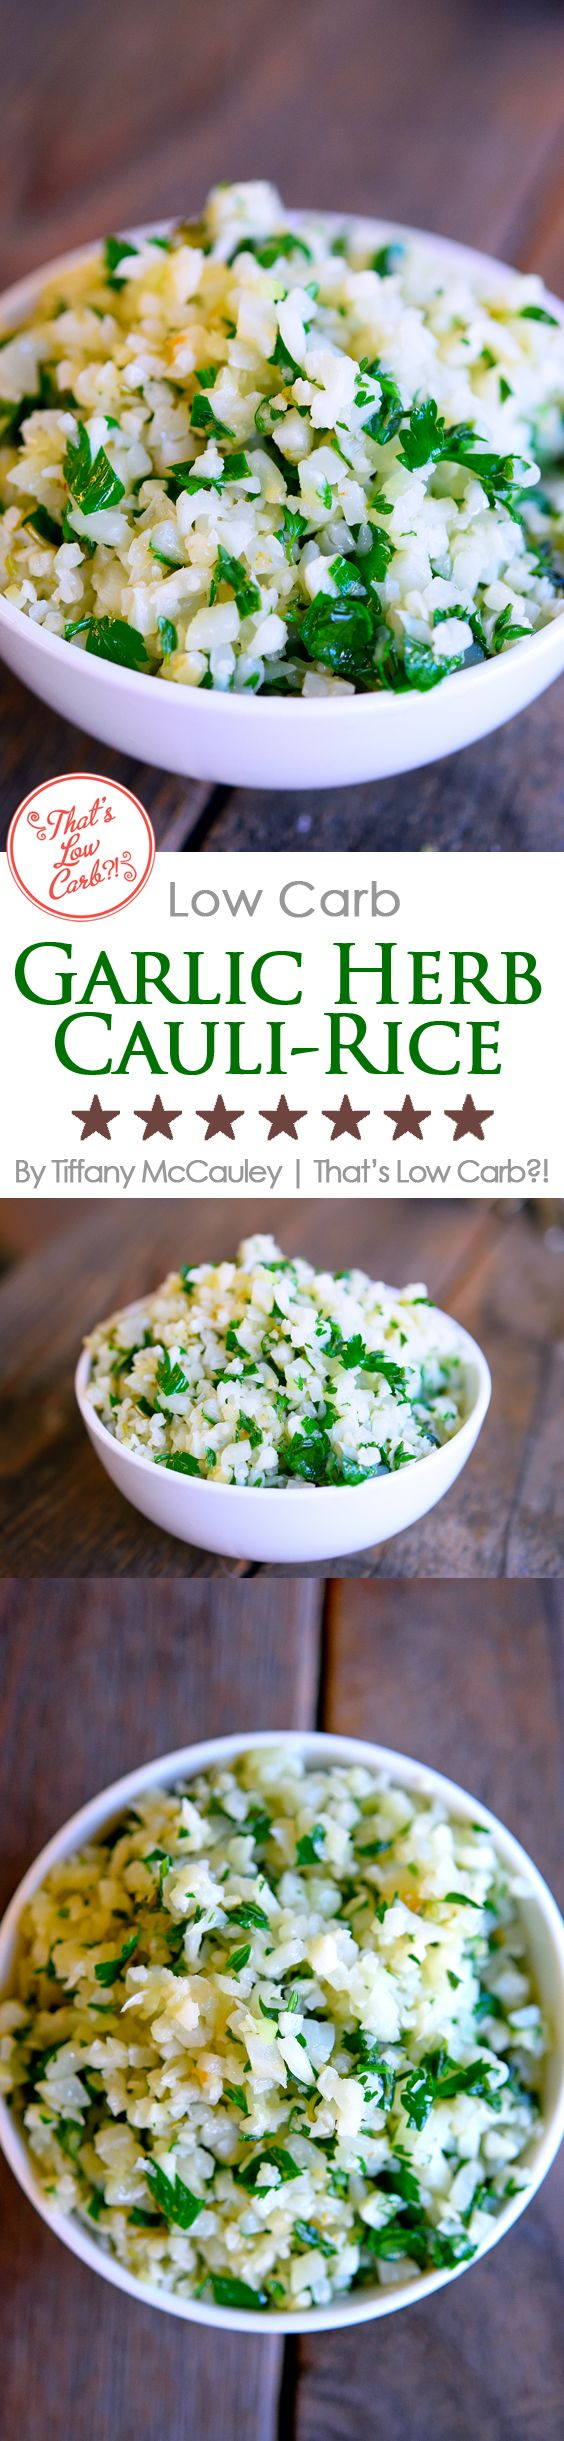 Low Carb Recipes | Low Carb Rice Recipe | Cauliflower Rice Recipe | Healthy Recipe